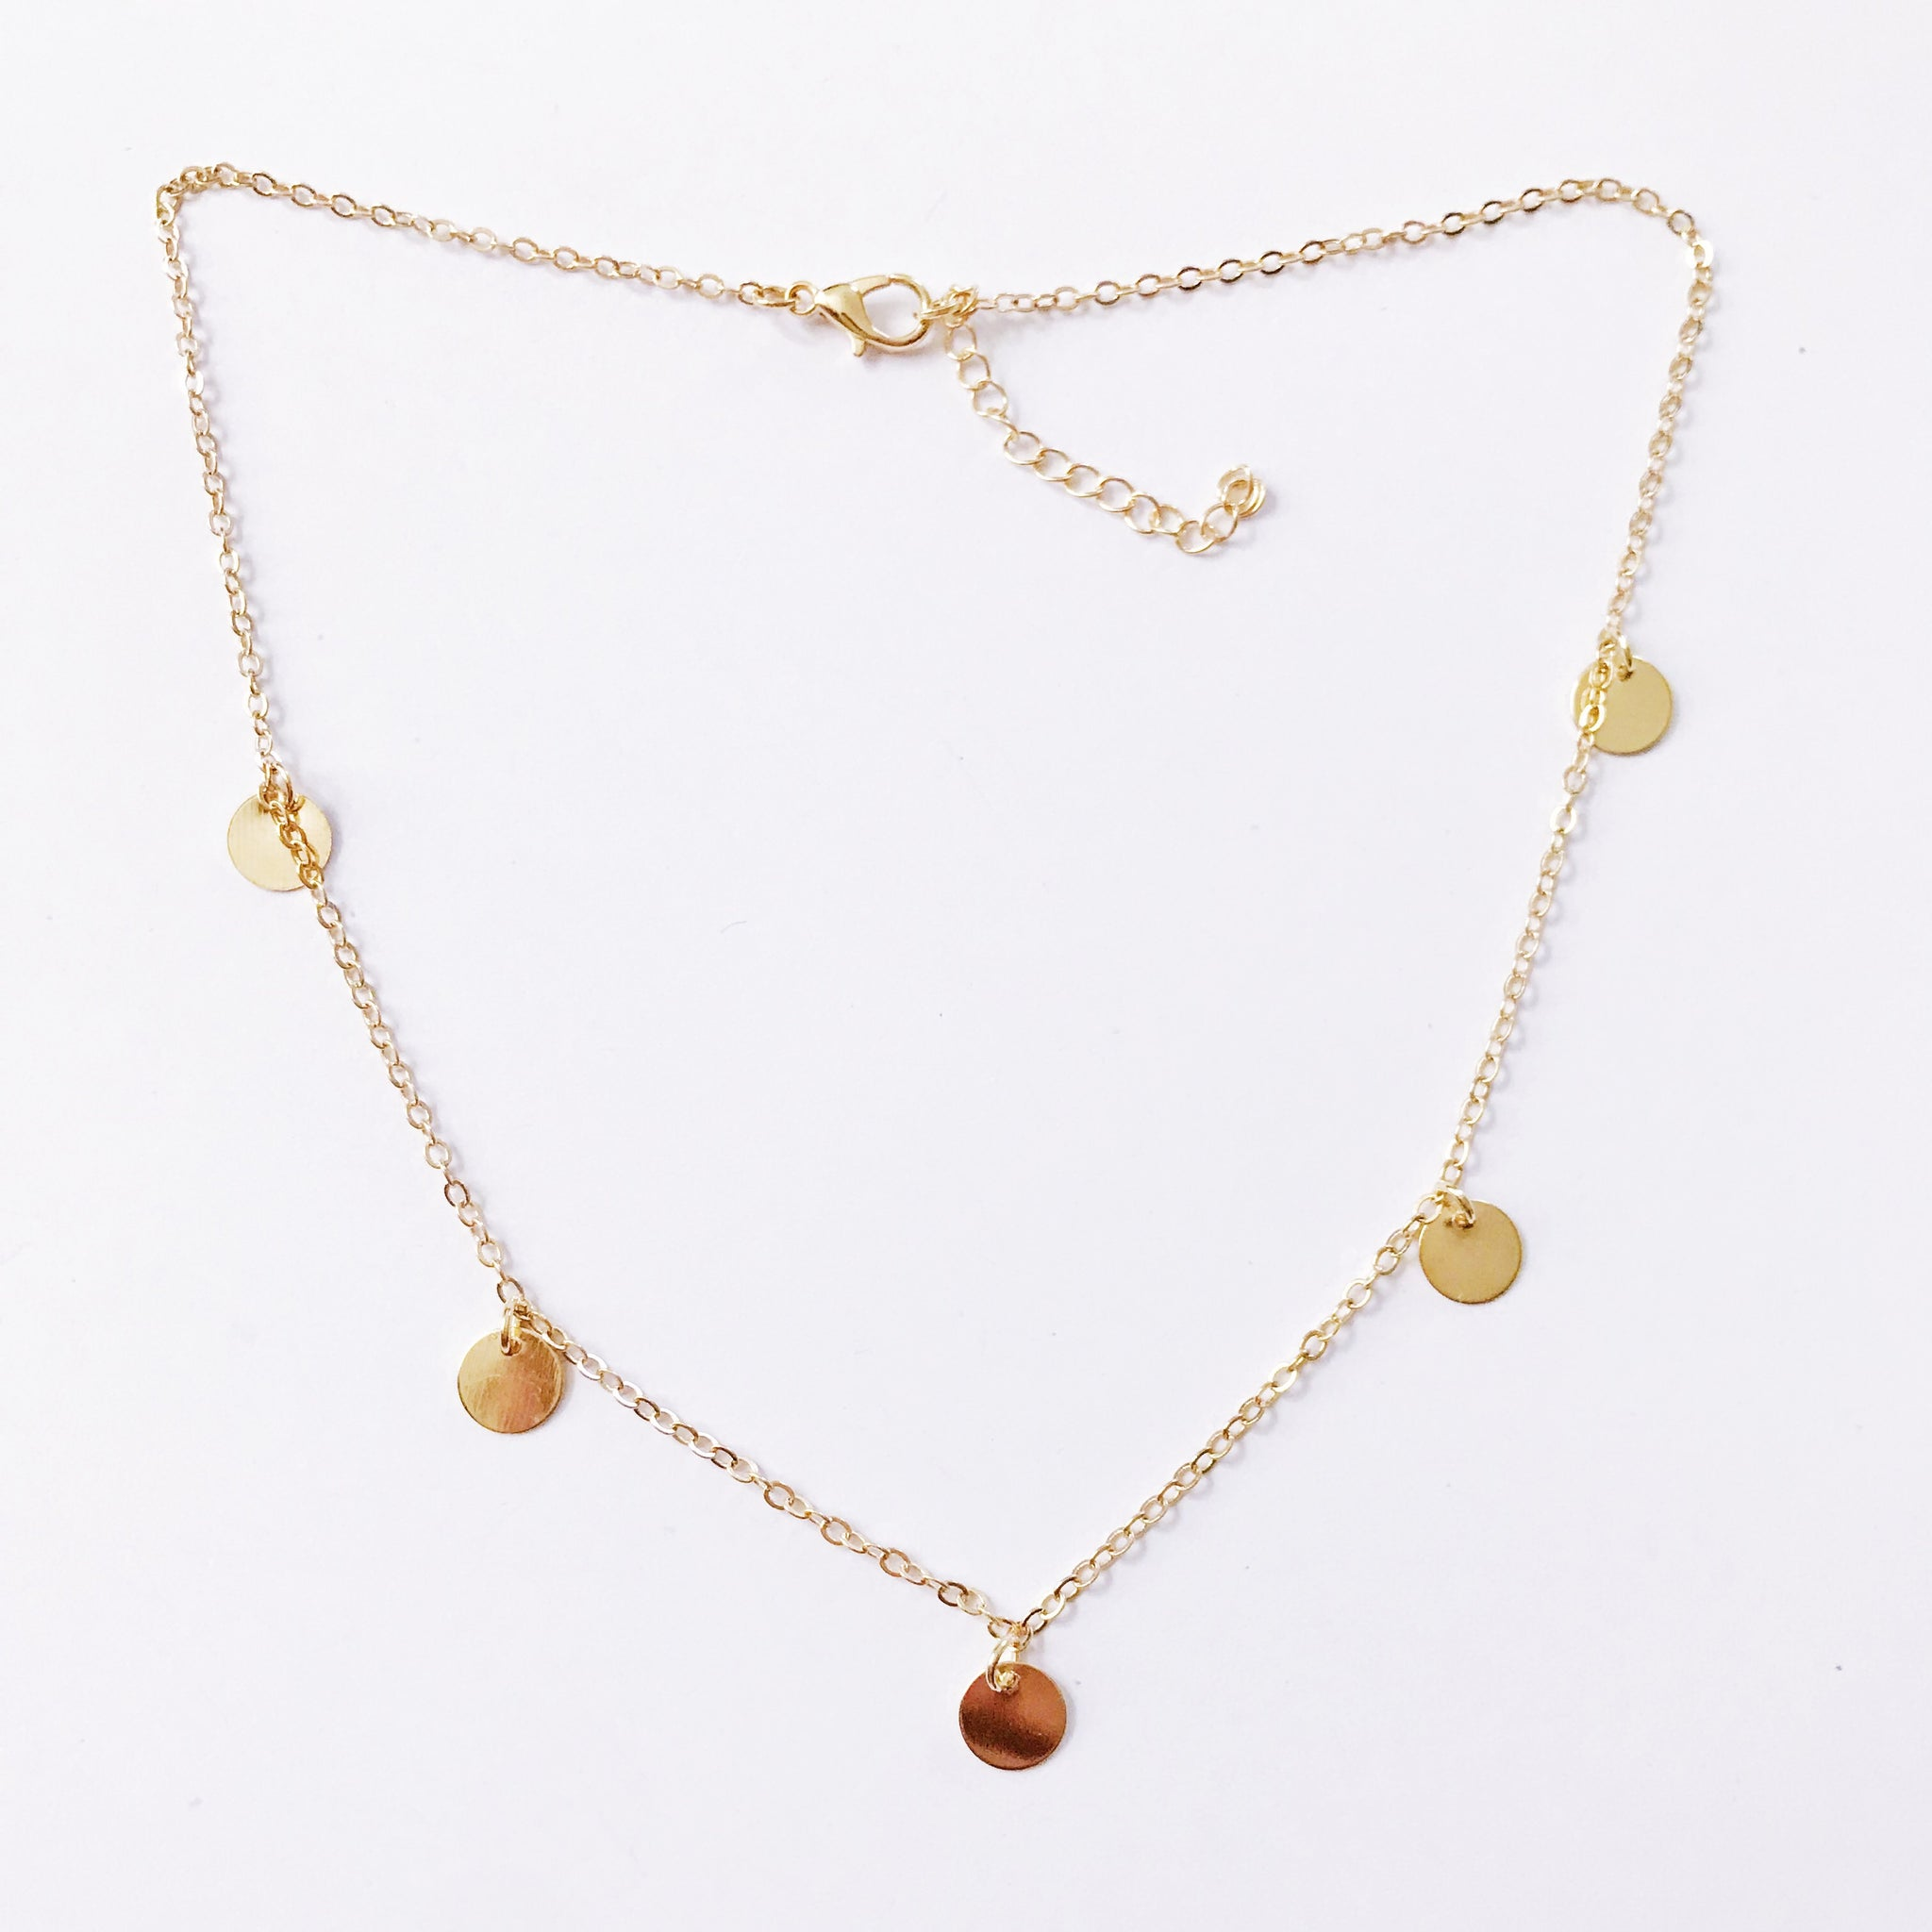 Boho Dangle Necklace - Gold